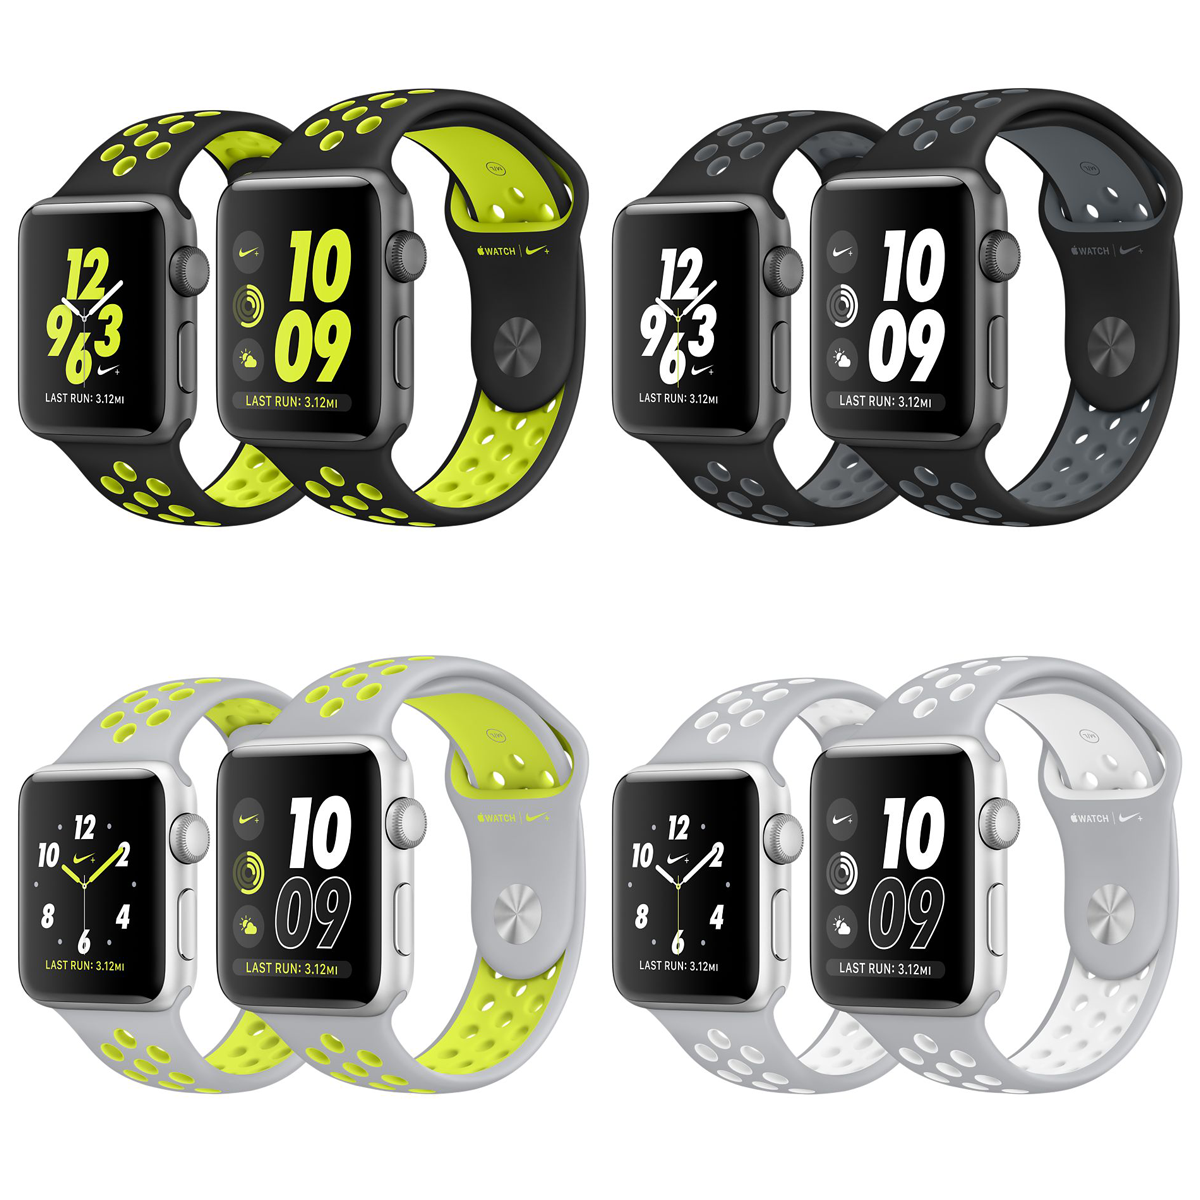 Applewatch nike models